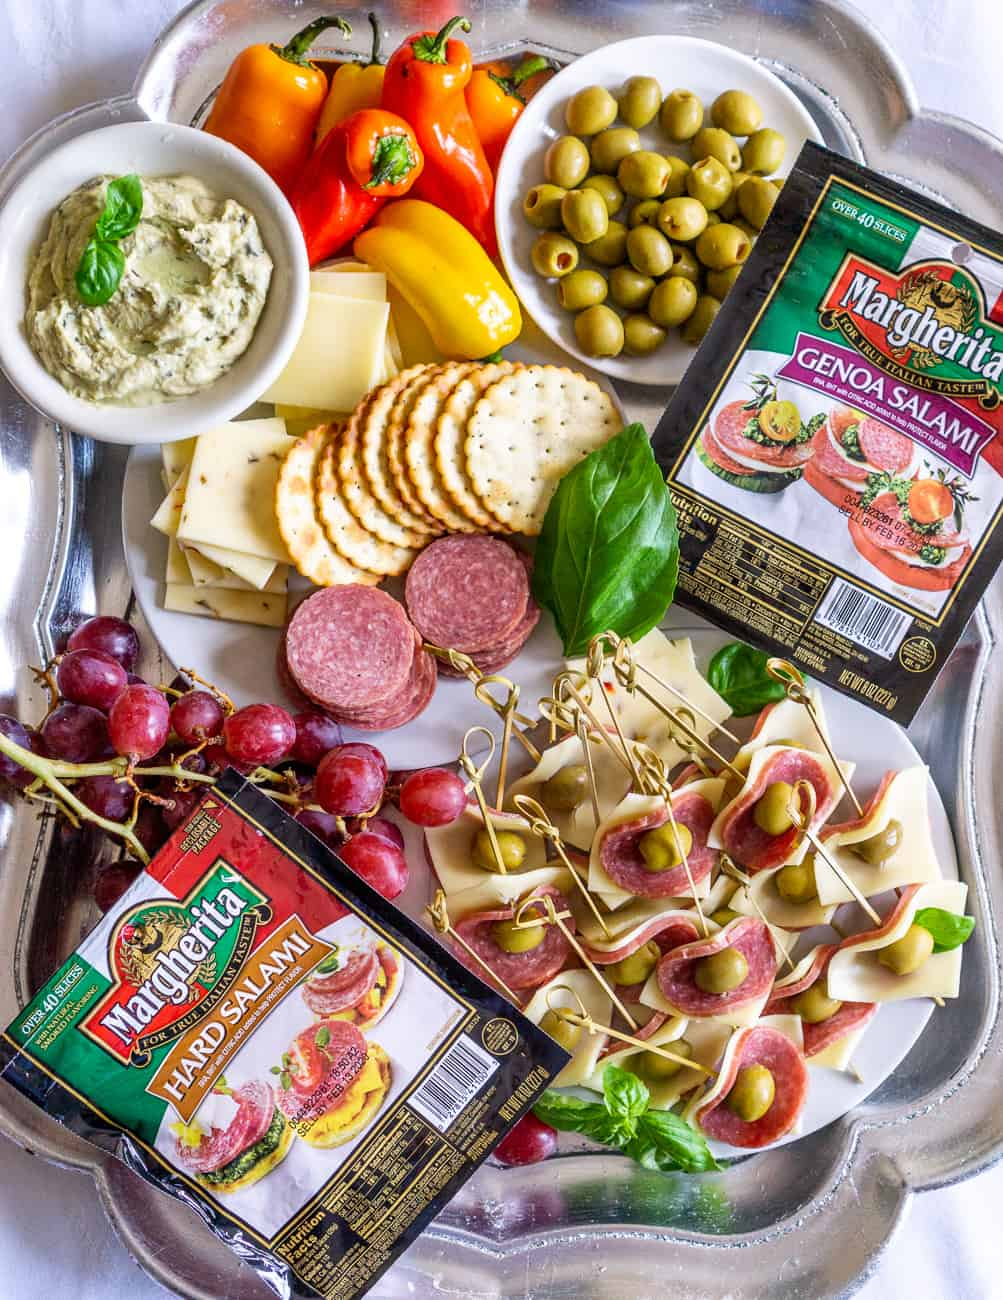 appetizer tray with a plate of salami appetizers, hummus, crackers, salami, cheese, grapes